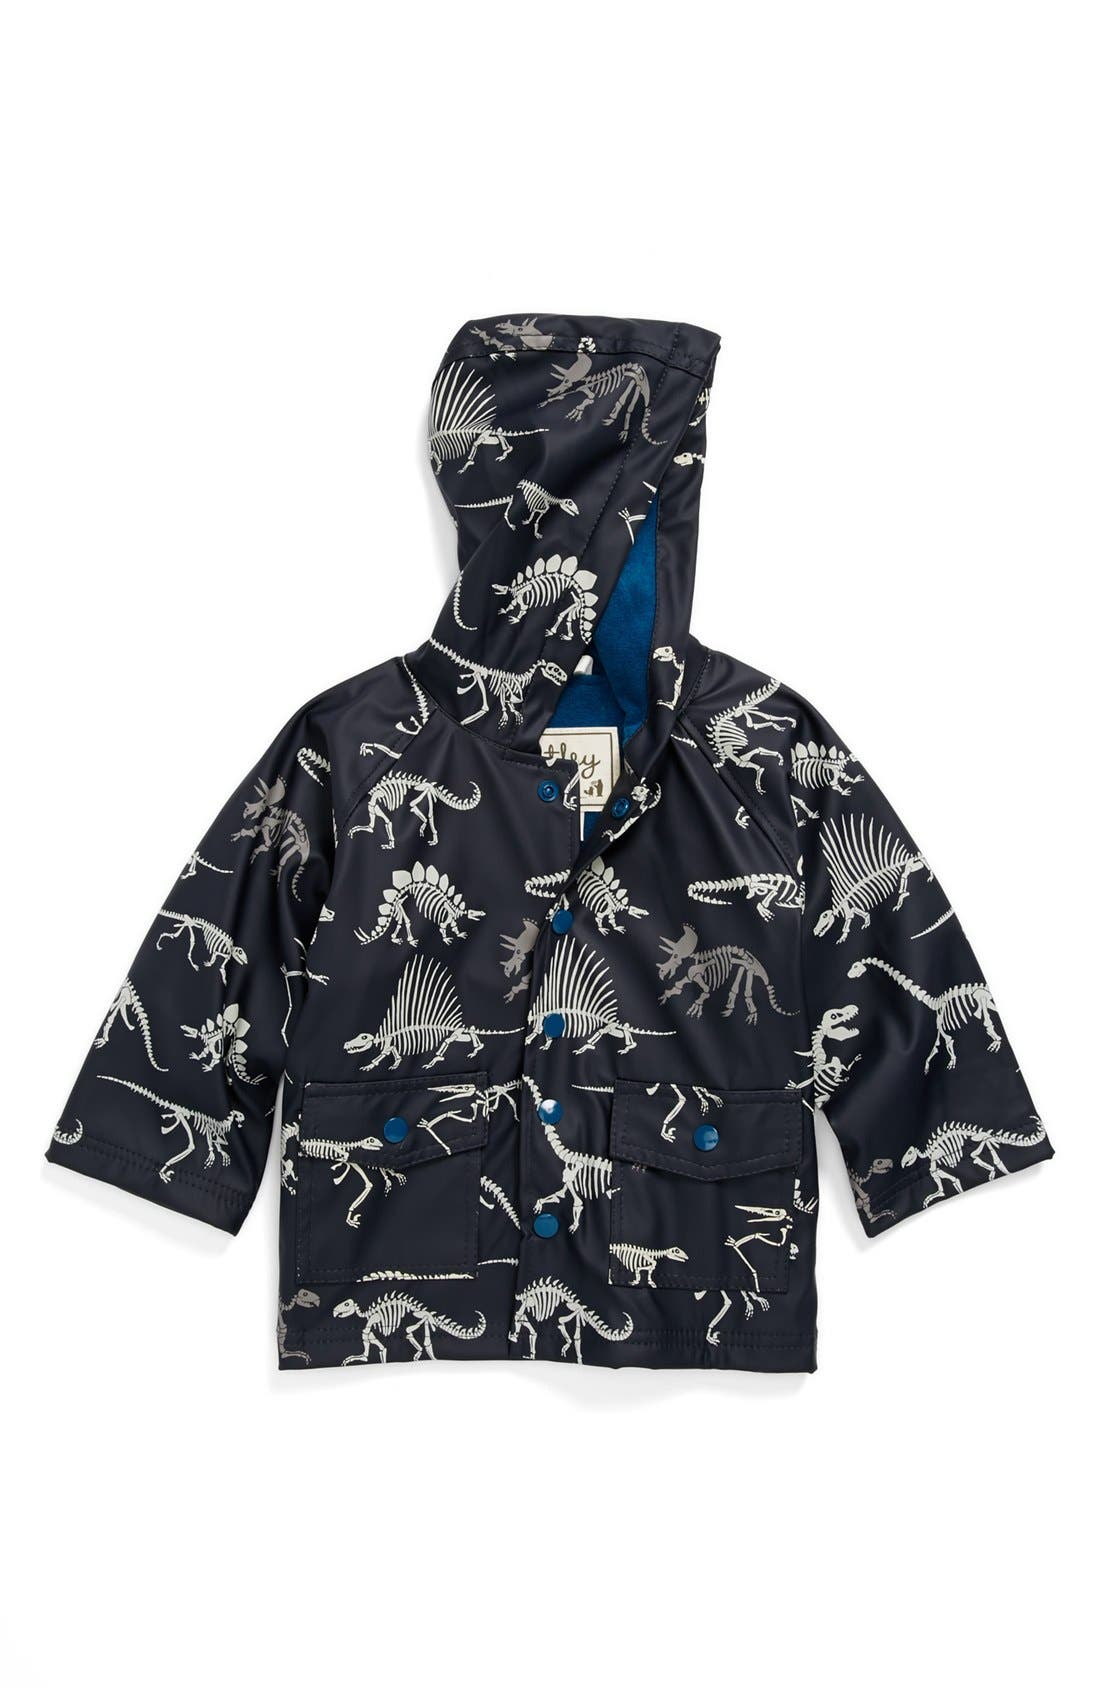 Main Image - Hatley 'Dino Bones' Rain Jacket (Baby Boys, Toddler Boys, Little Boys & Big Boys)